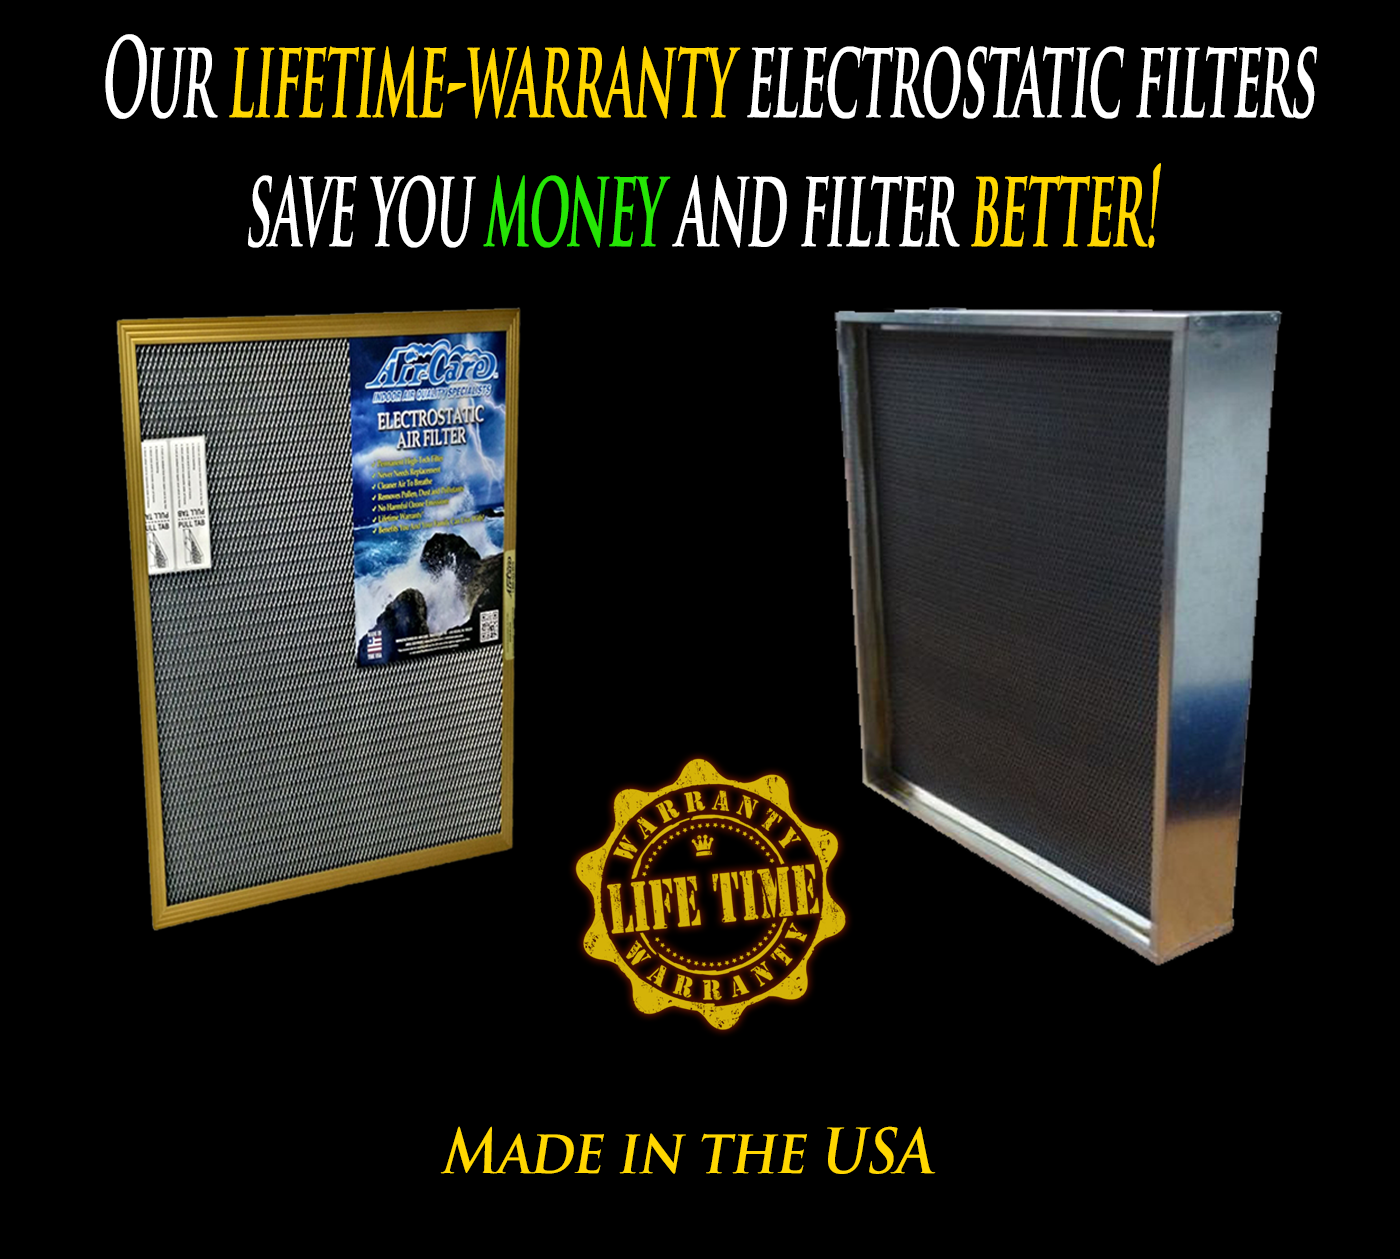 Our electrostatic filters save you money!